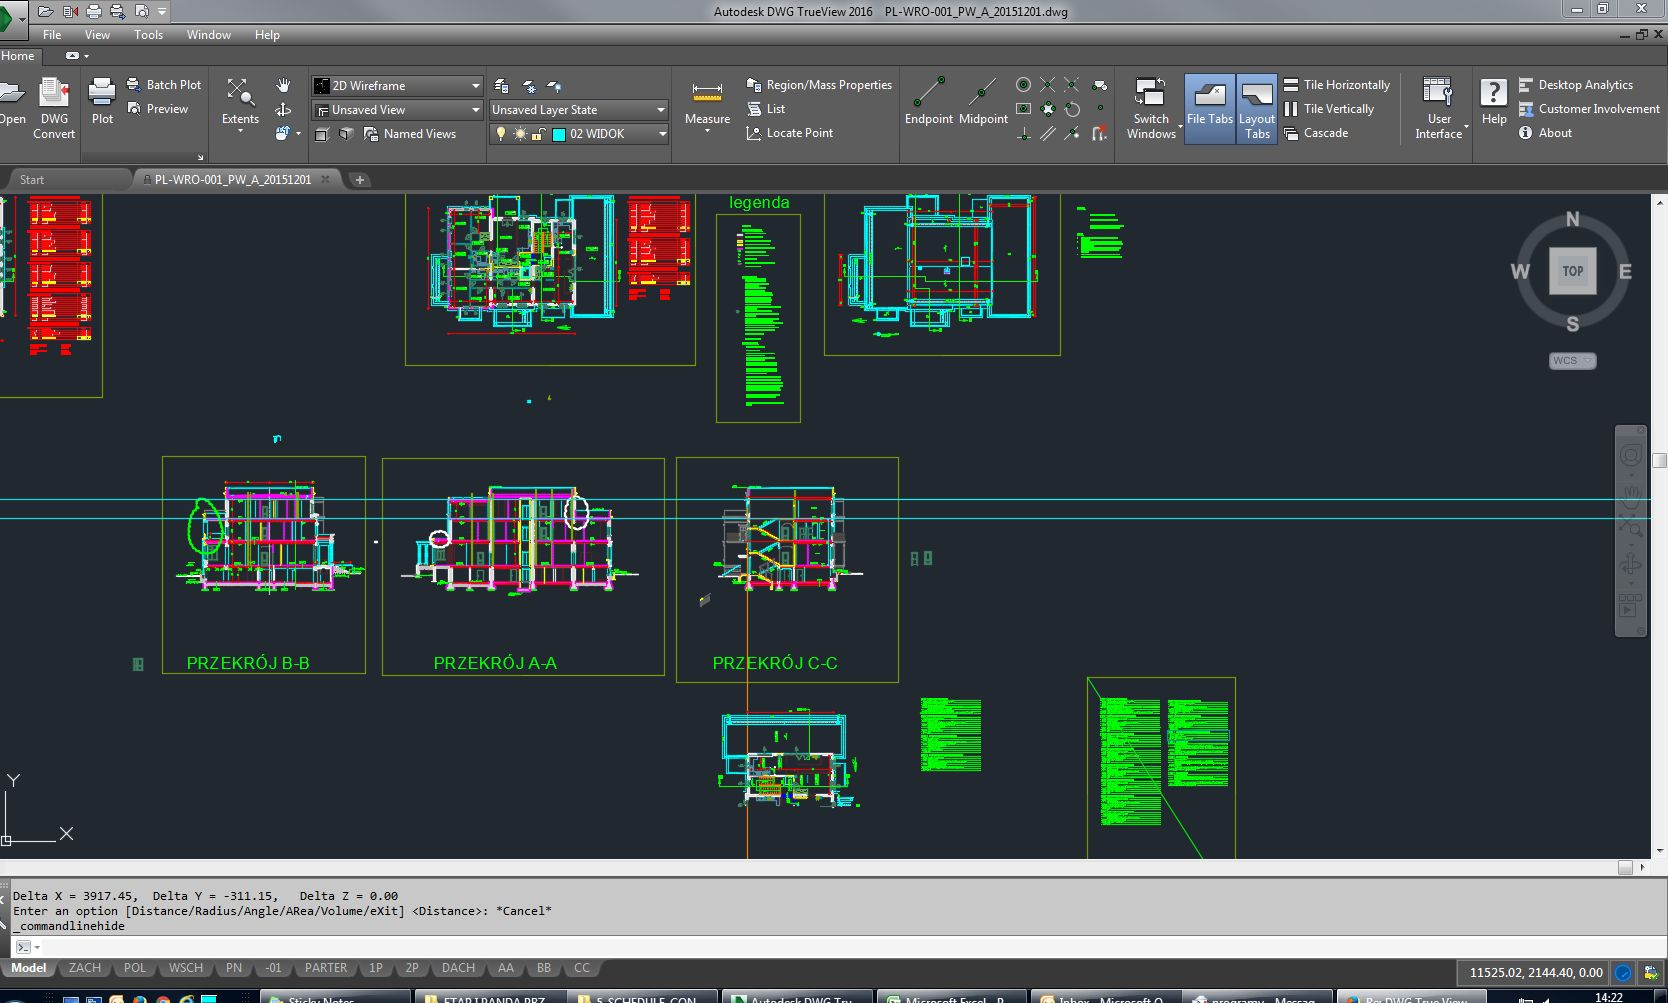 autocad viewer download